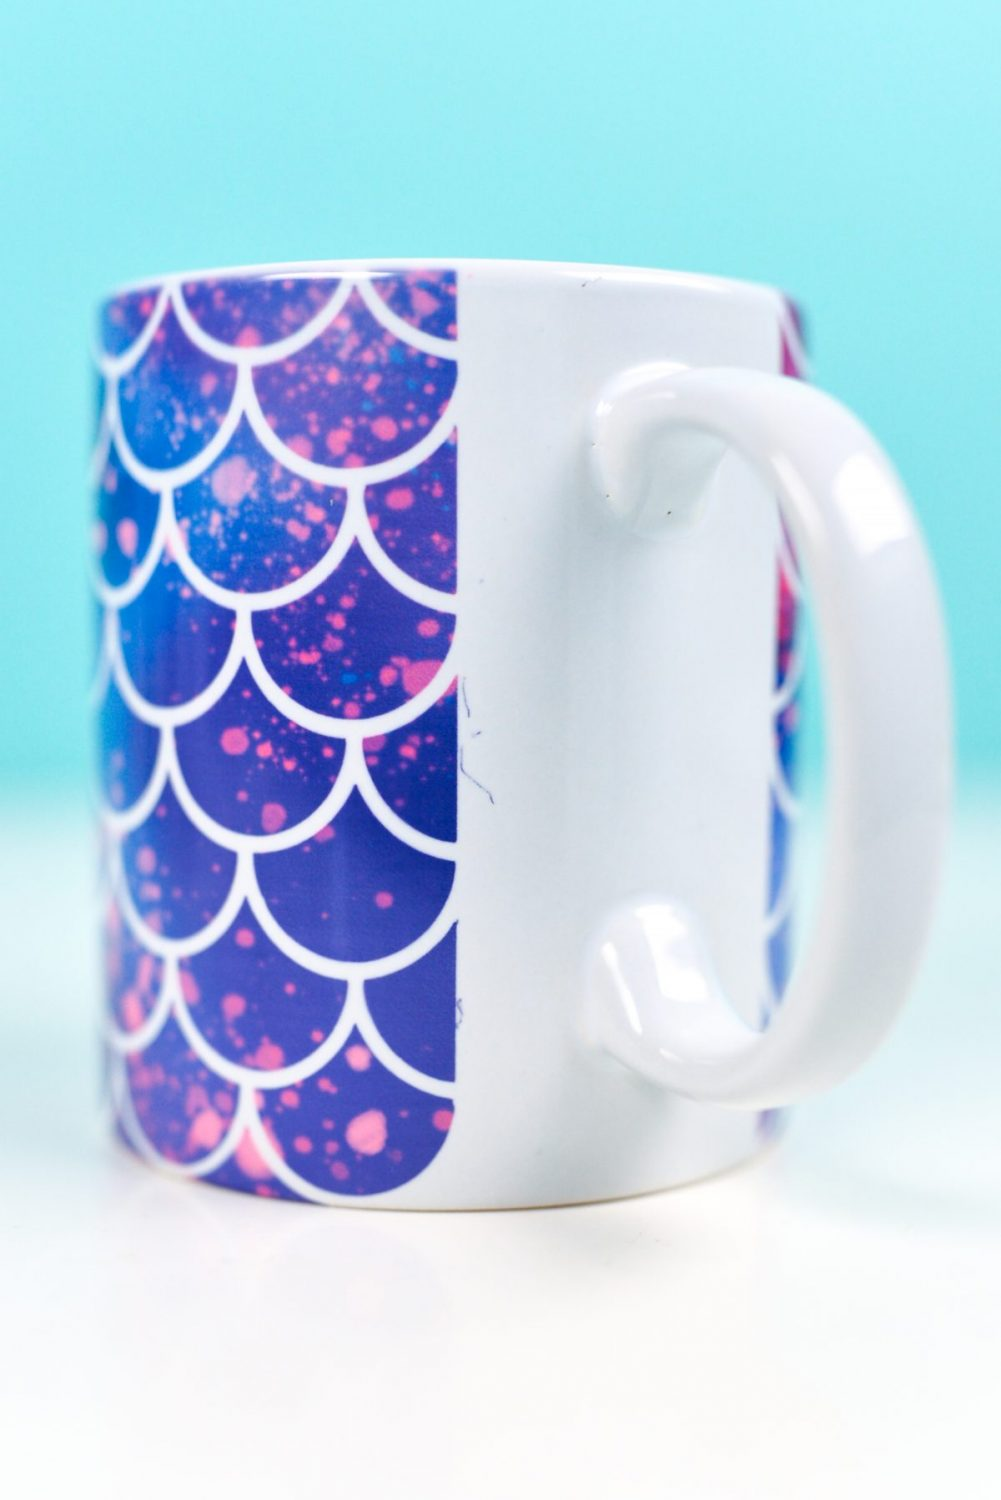 Mug showing dust by the handle